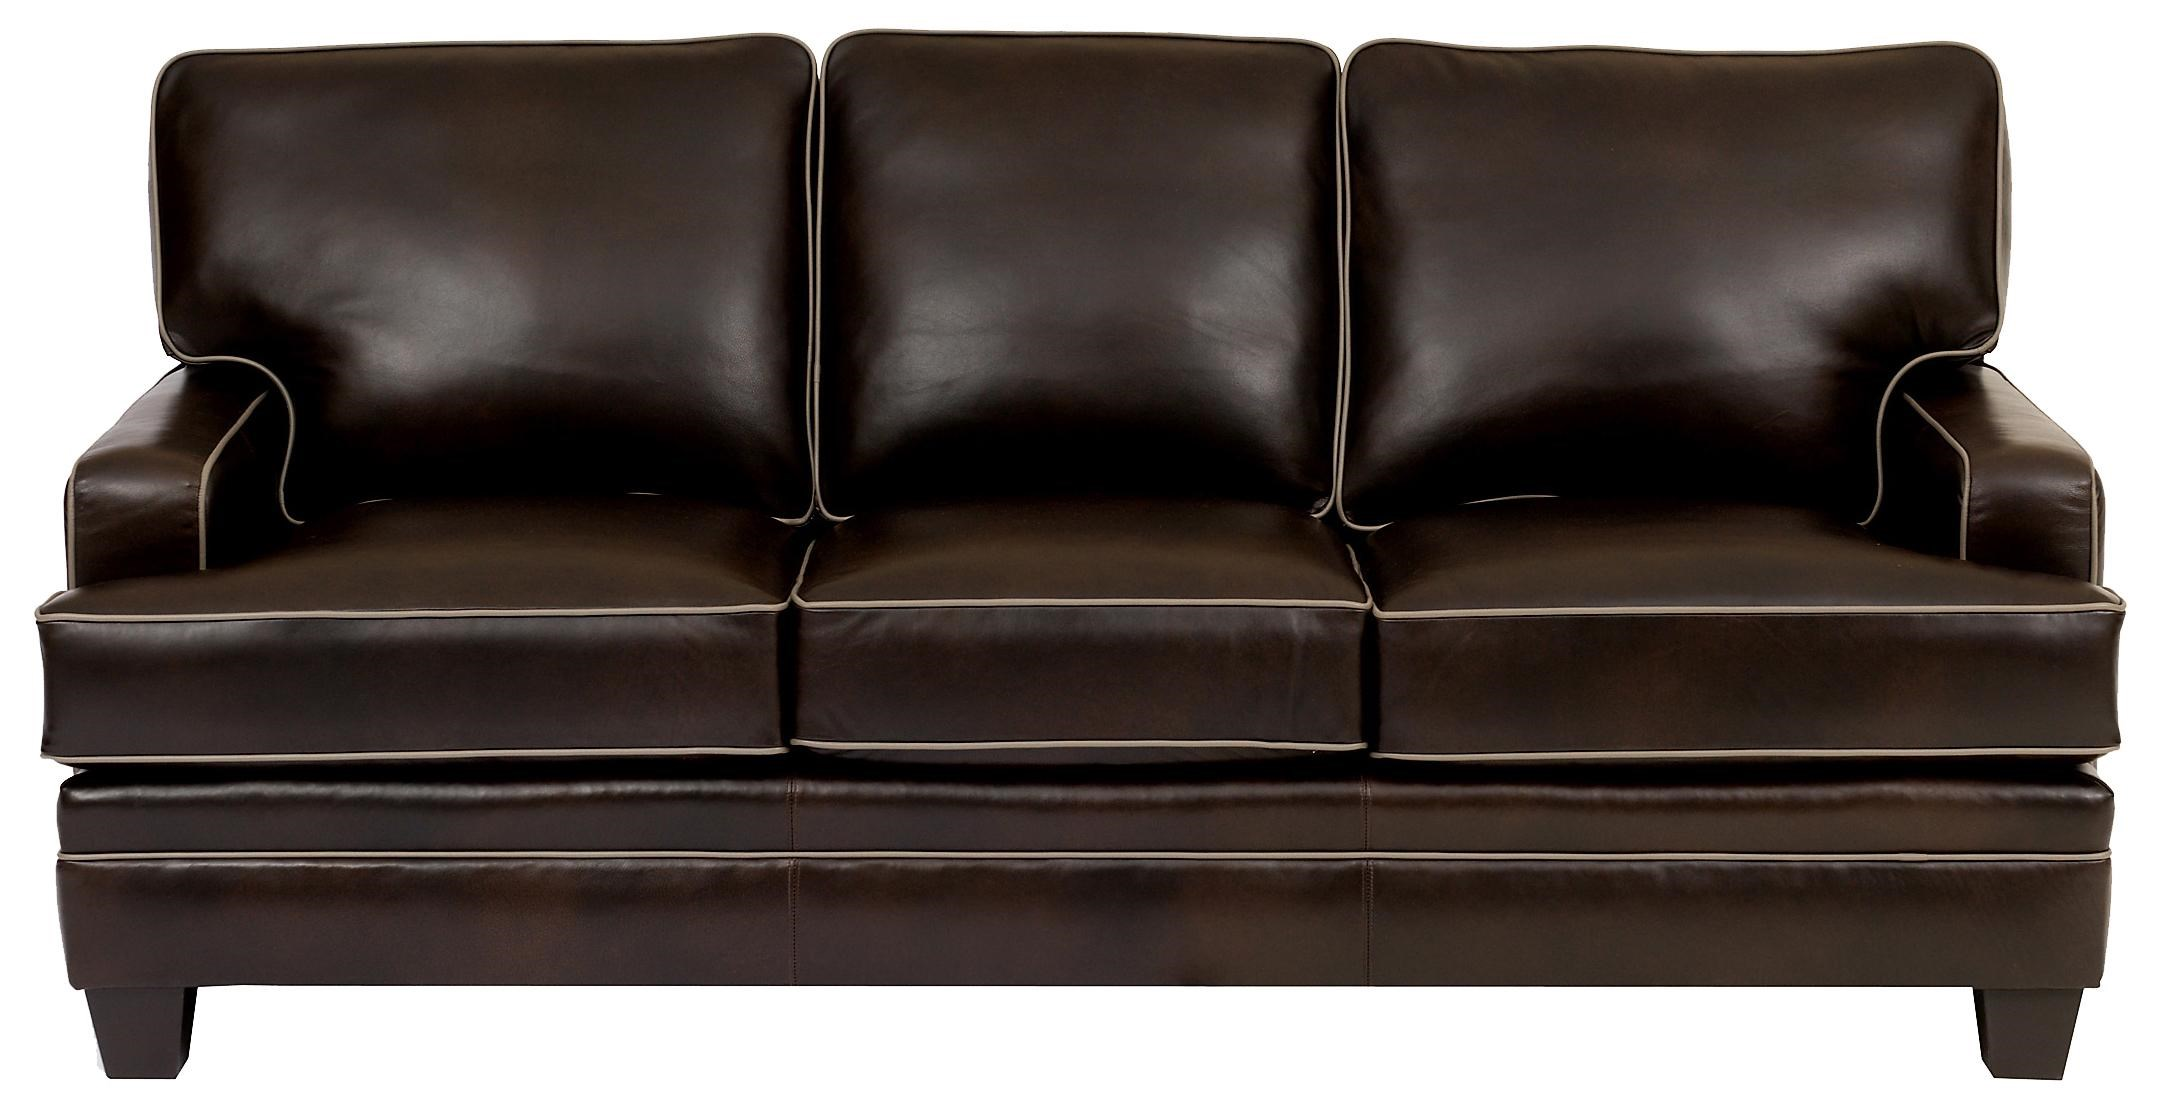 Smith Brothers Build Your Own (5000 Series) Accent Sofa With Tapered Leg